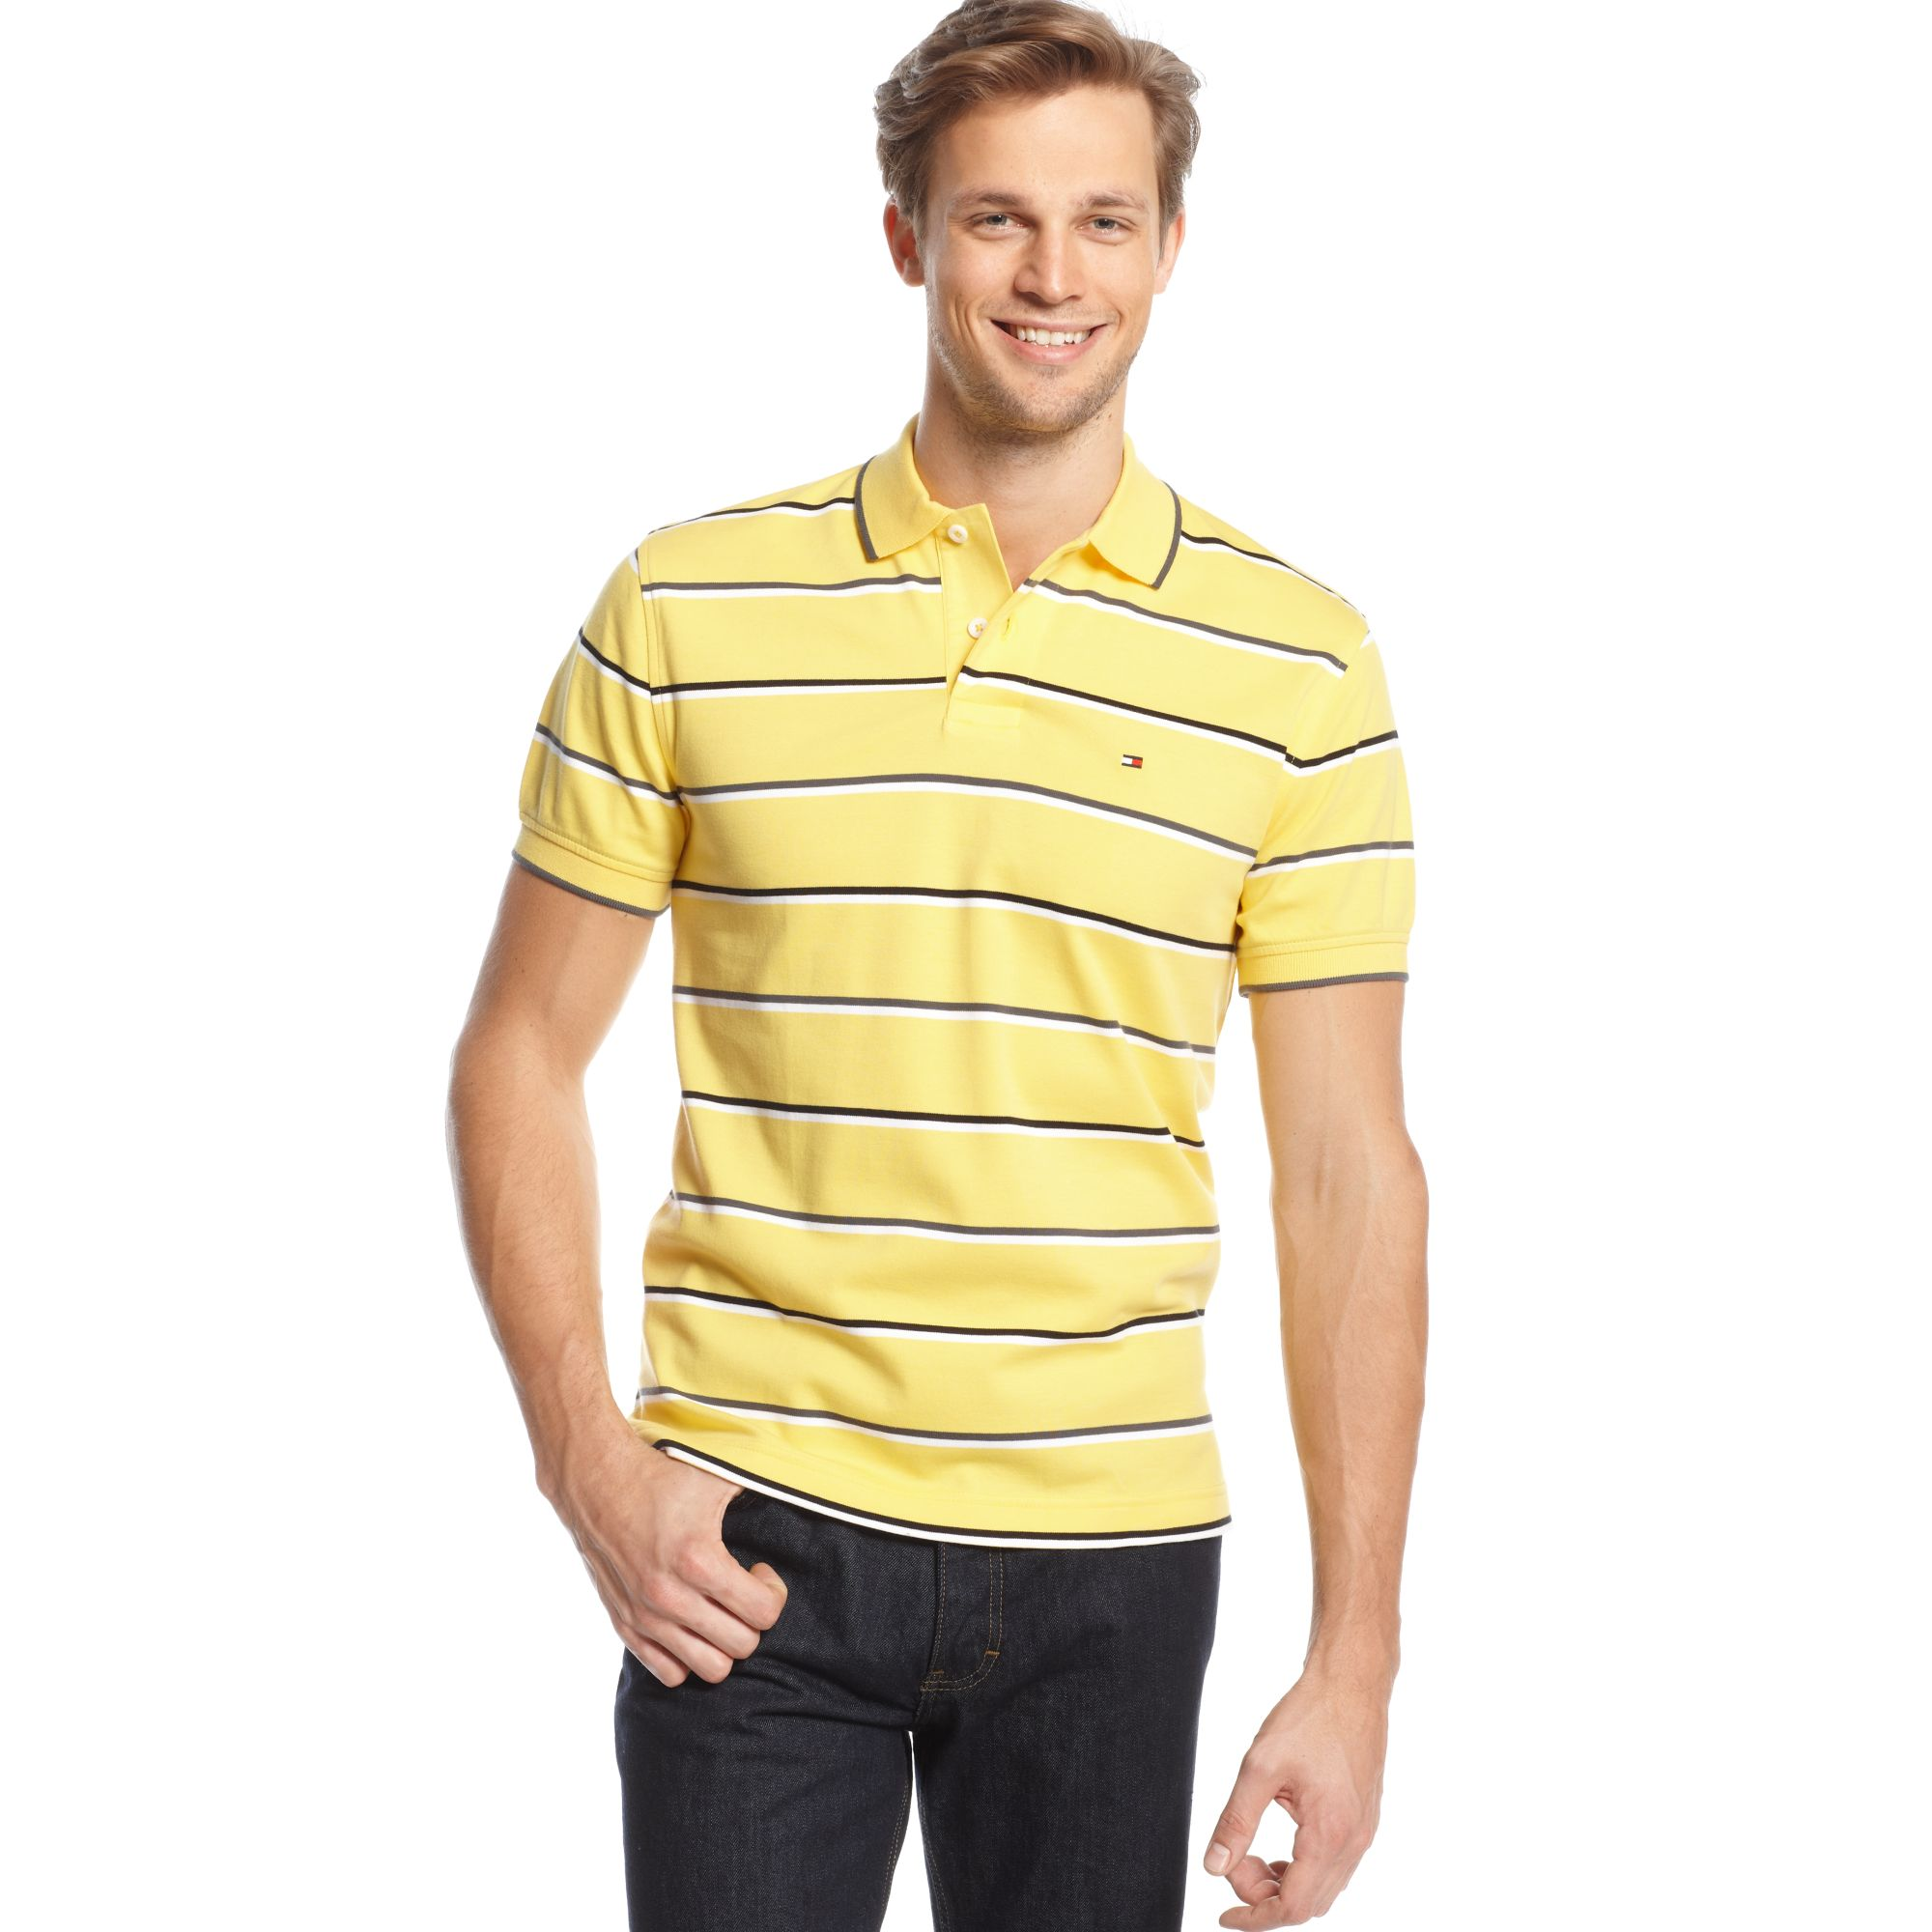 lyst tommy hilfiger burch striped polo shirt in yellow. Black Bedroom Furniture Sets. Home Design Ideas